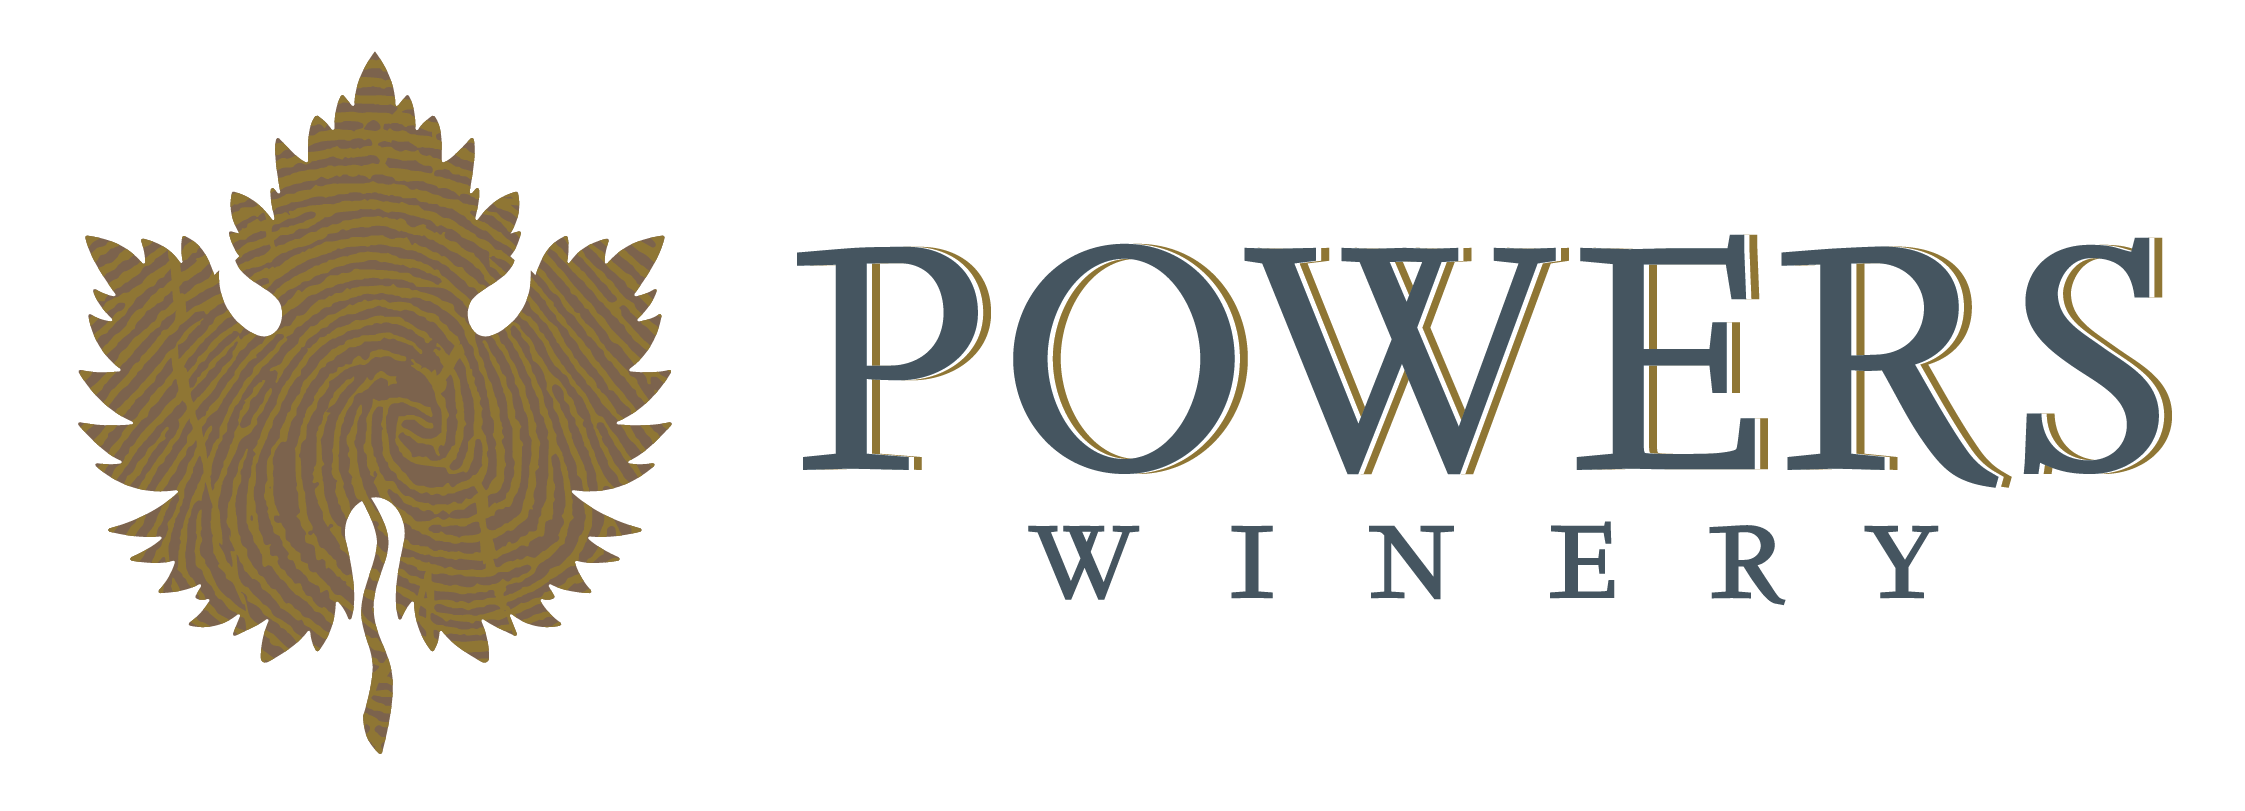 Powers winery navy logo with gold shadow